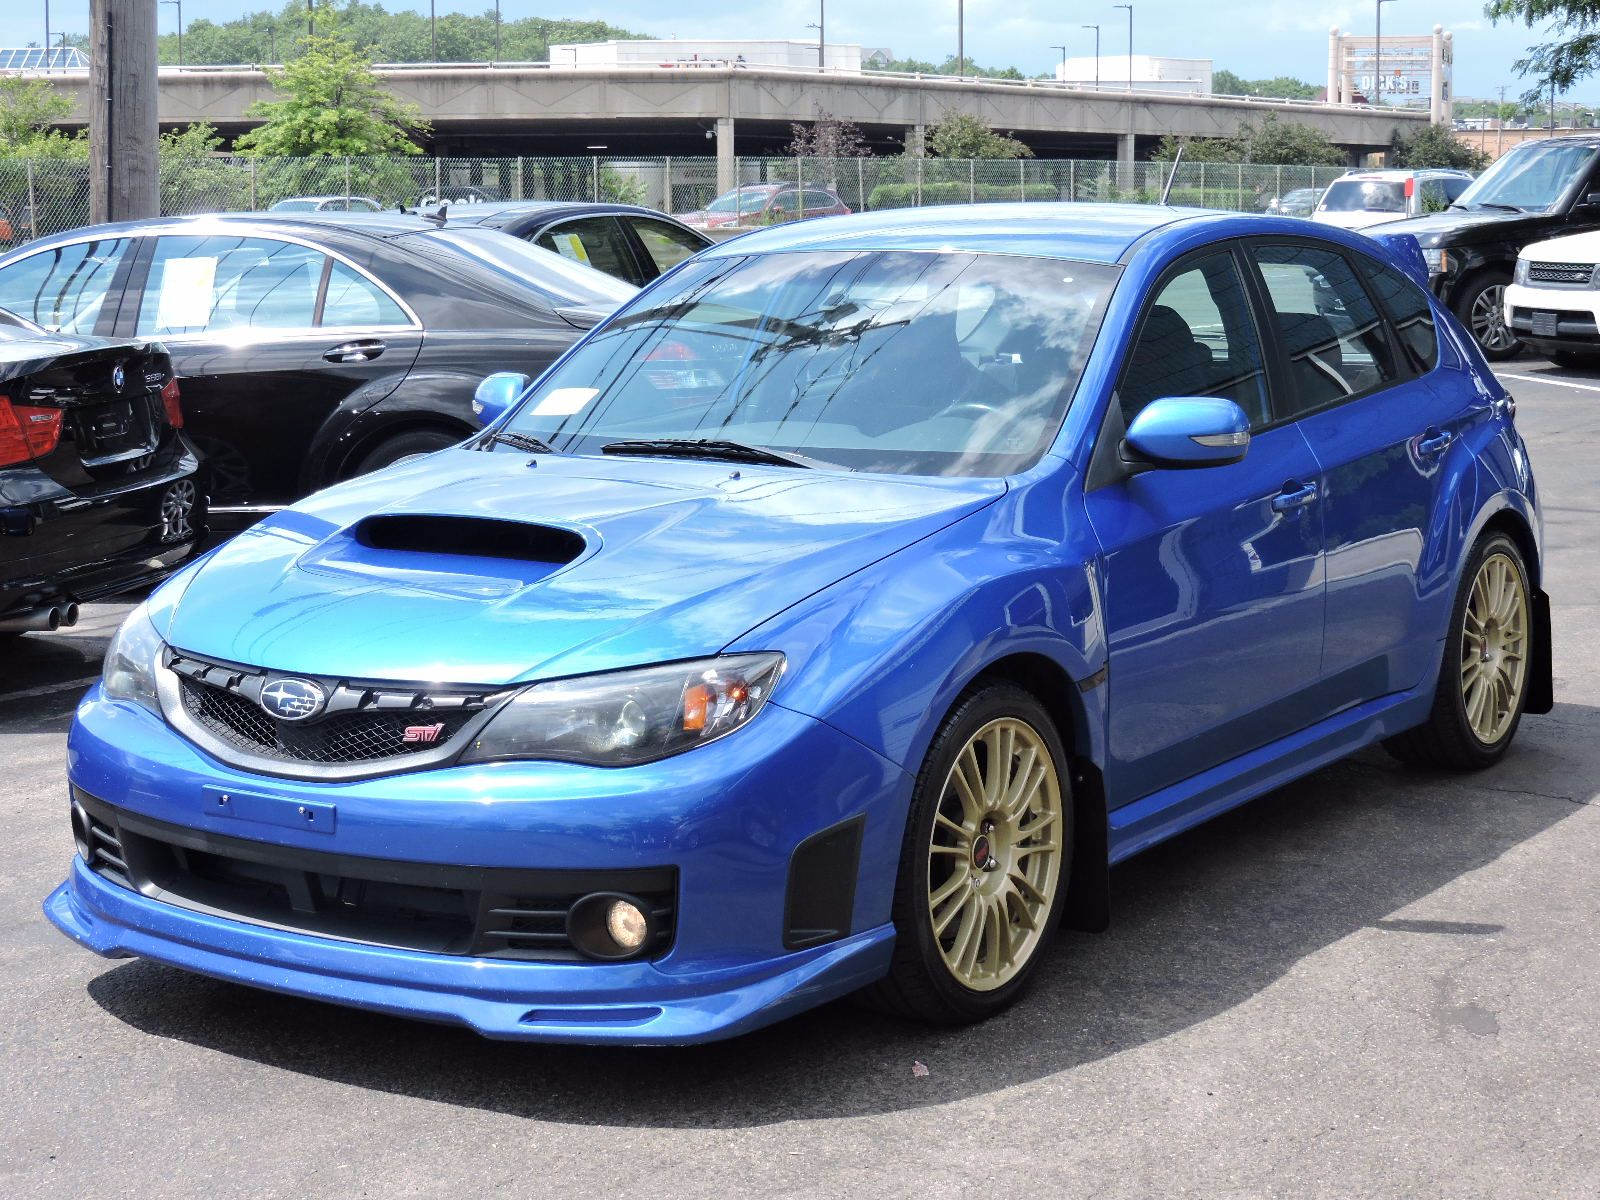 used 2010 subaru impreza wrx wrx sti at auto house usa saugus. Black Bedroom Furniture Sets. Home Design Ideas